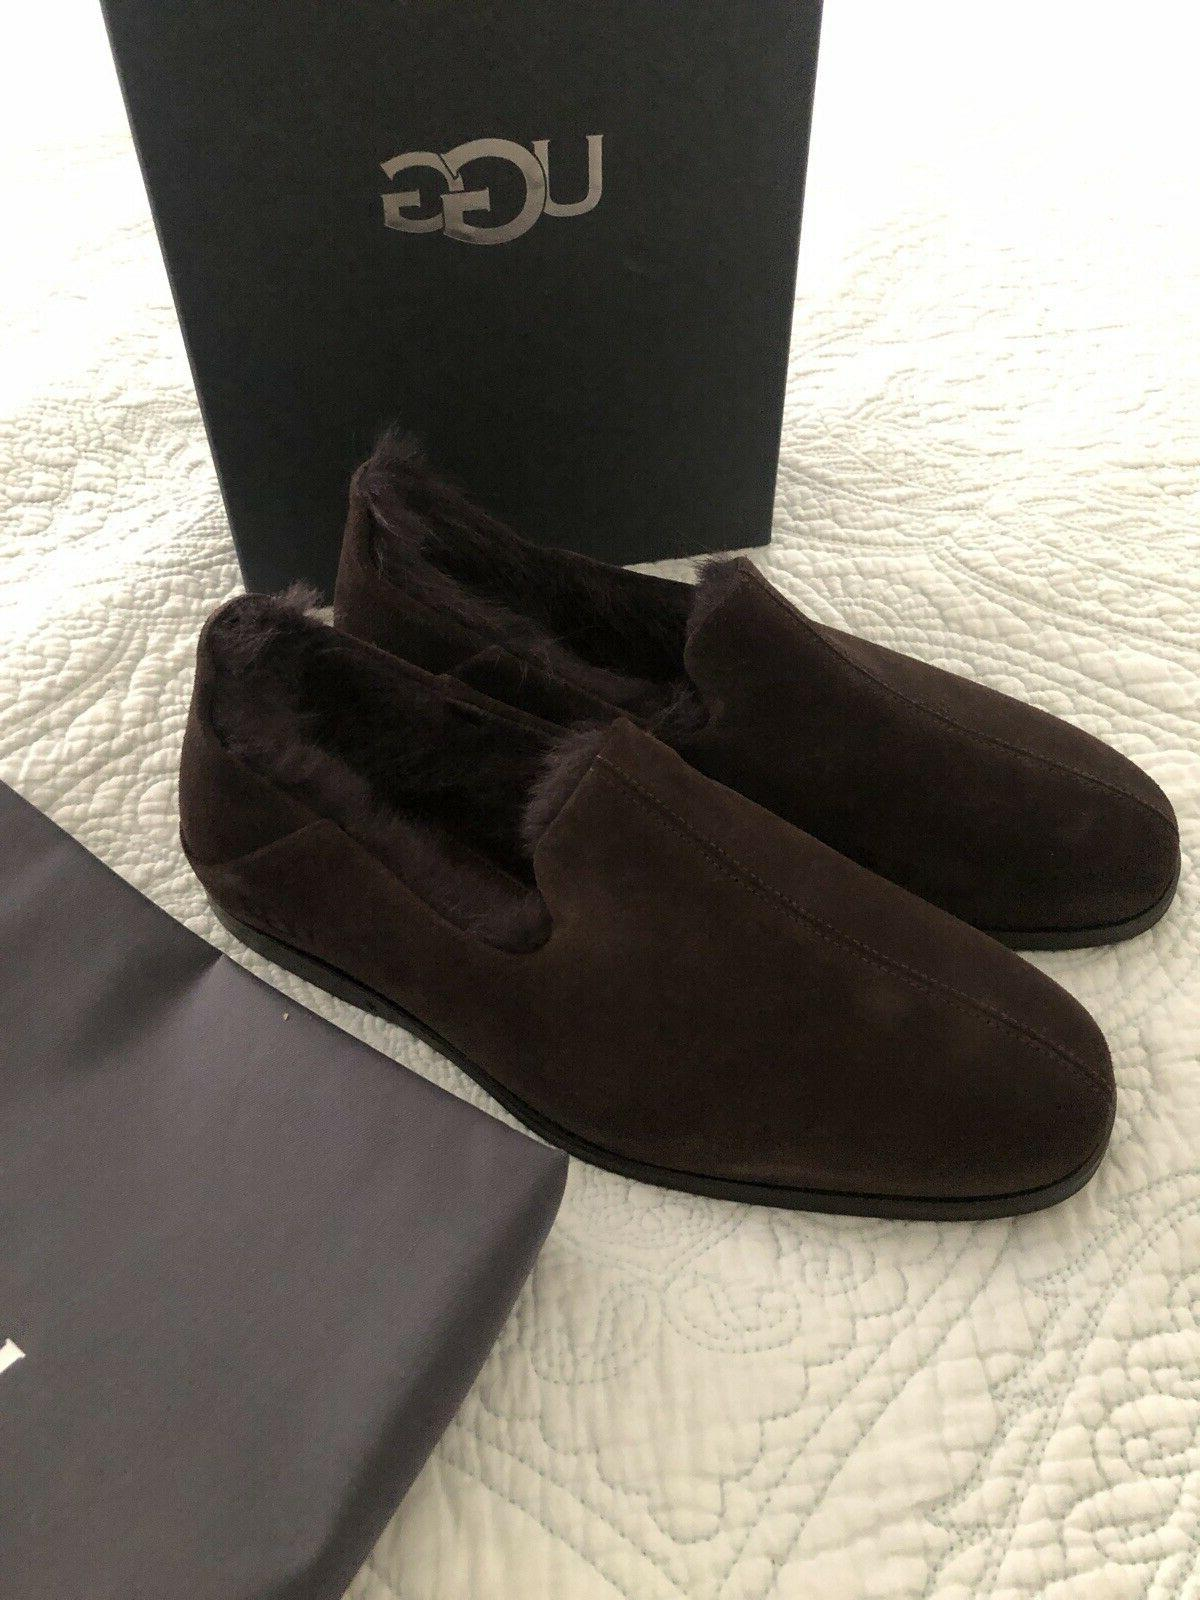 UGG AUSTRALIA Shearling Shoes Size 10